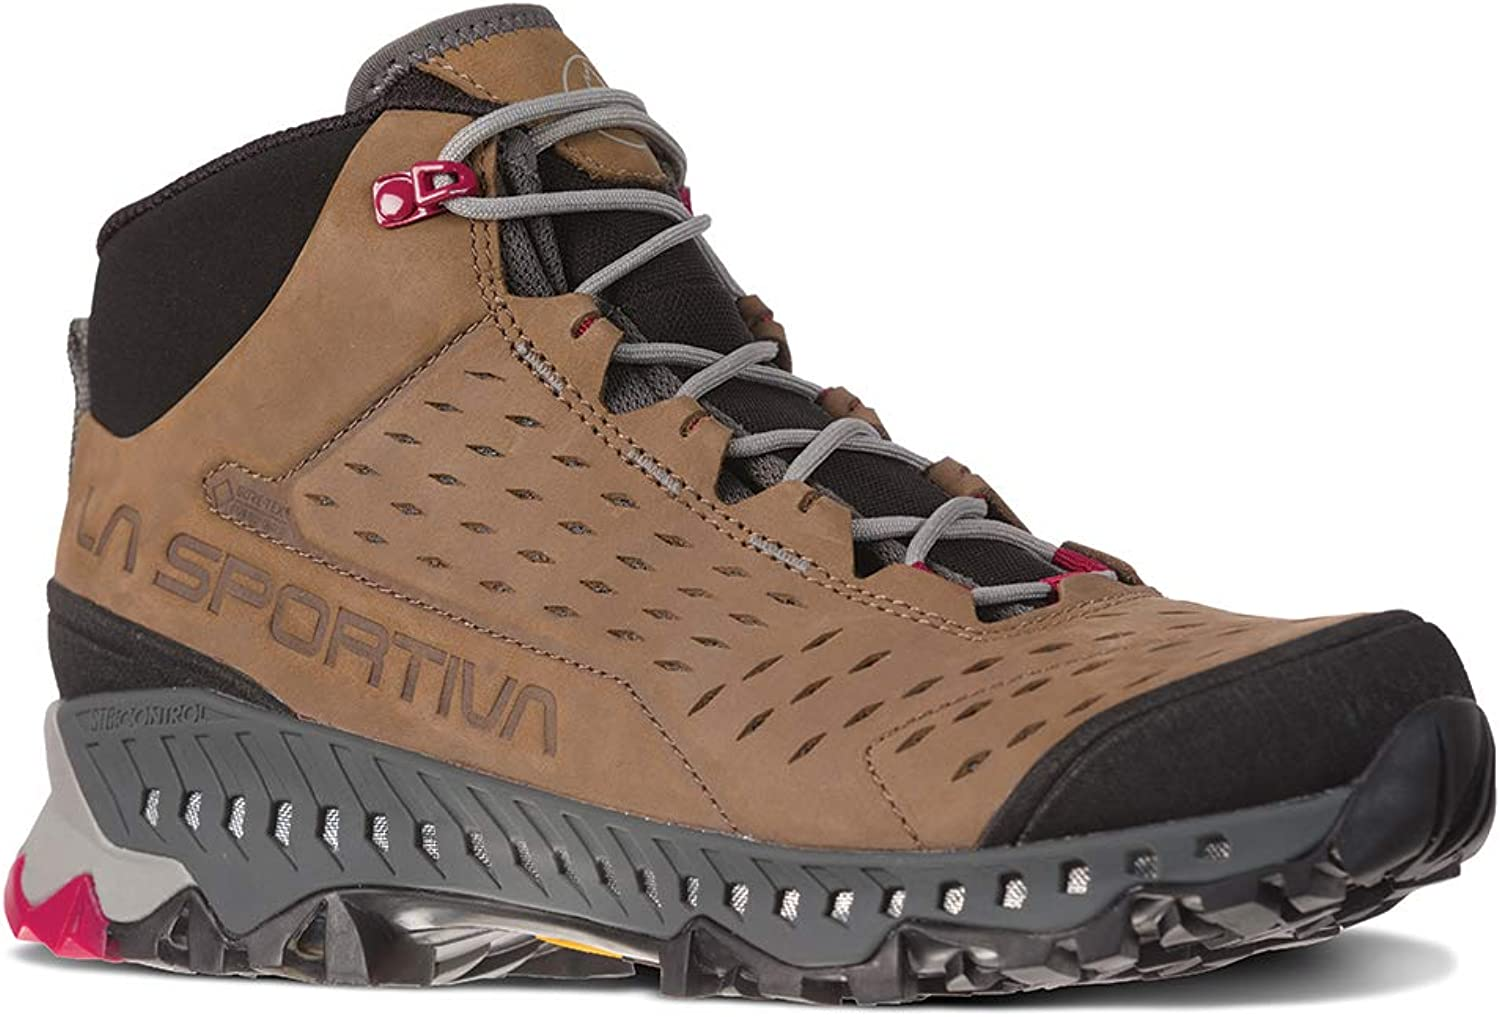 La Sportiva Pyramid GTX Women's Hiking shoes Brown